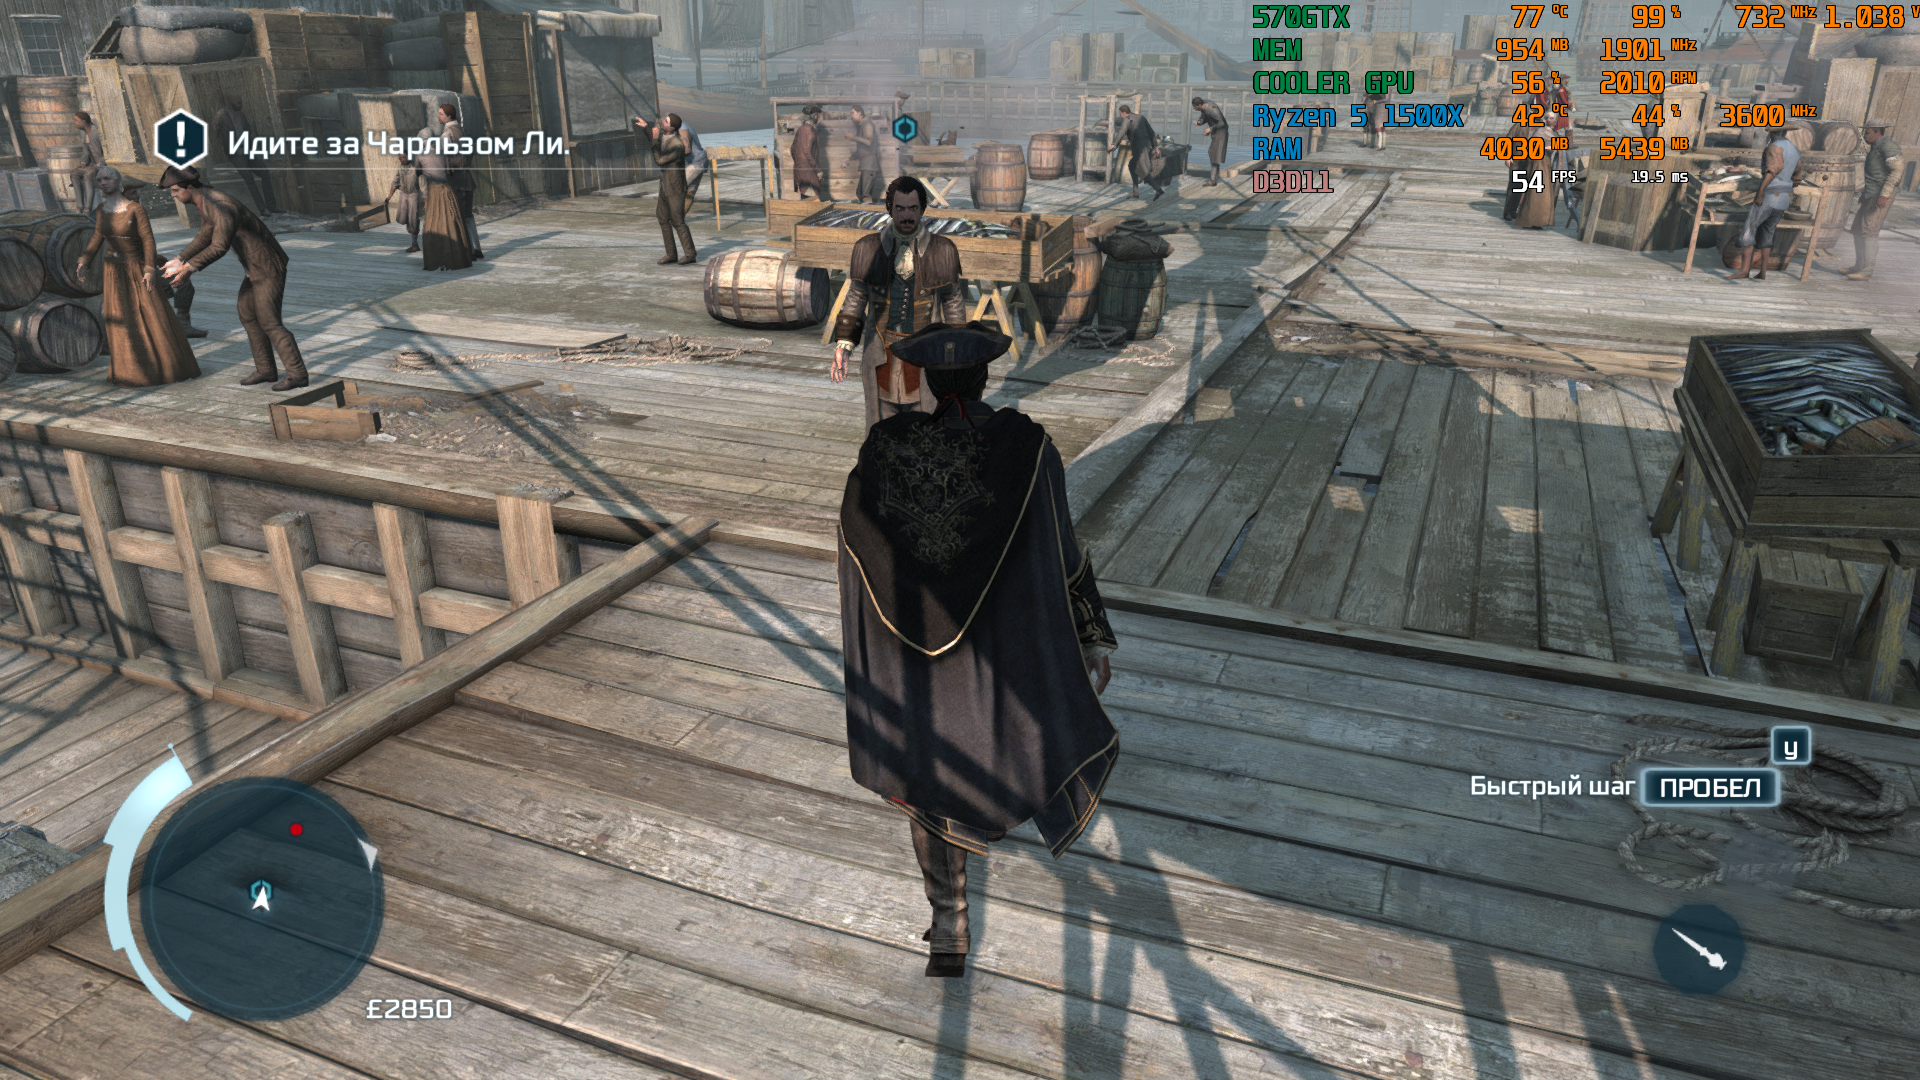 AC3SP_2018_09_21_22_48_57_577.png - Assassin's Creed 3